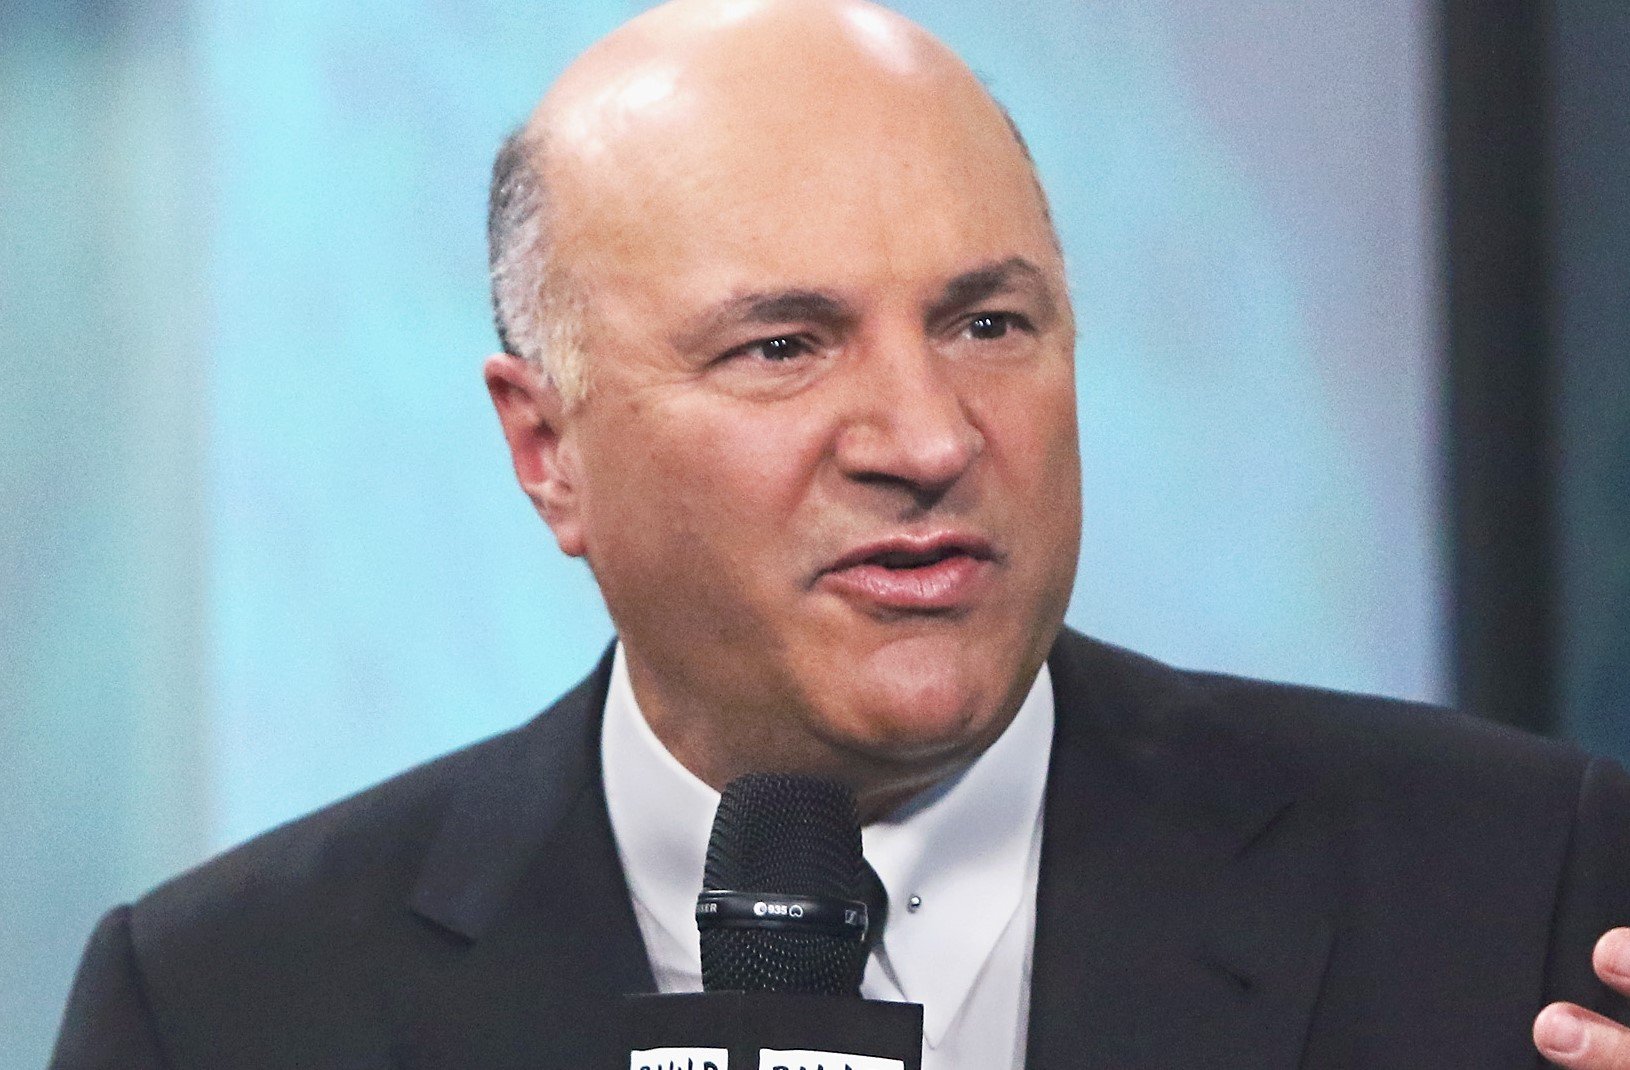 Kevin O'Leary-TV Shows, Cars, Net Worth, Wiki, Wife, Kids, Business